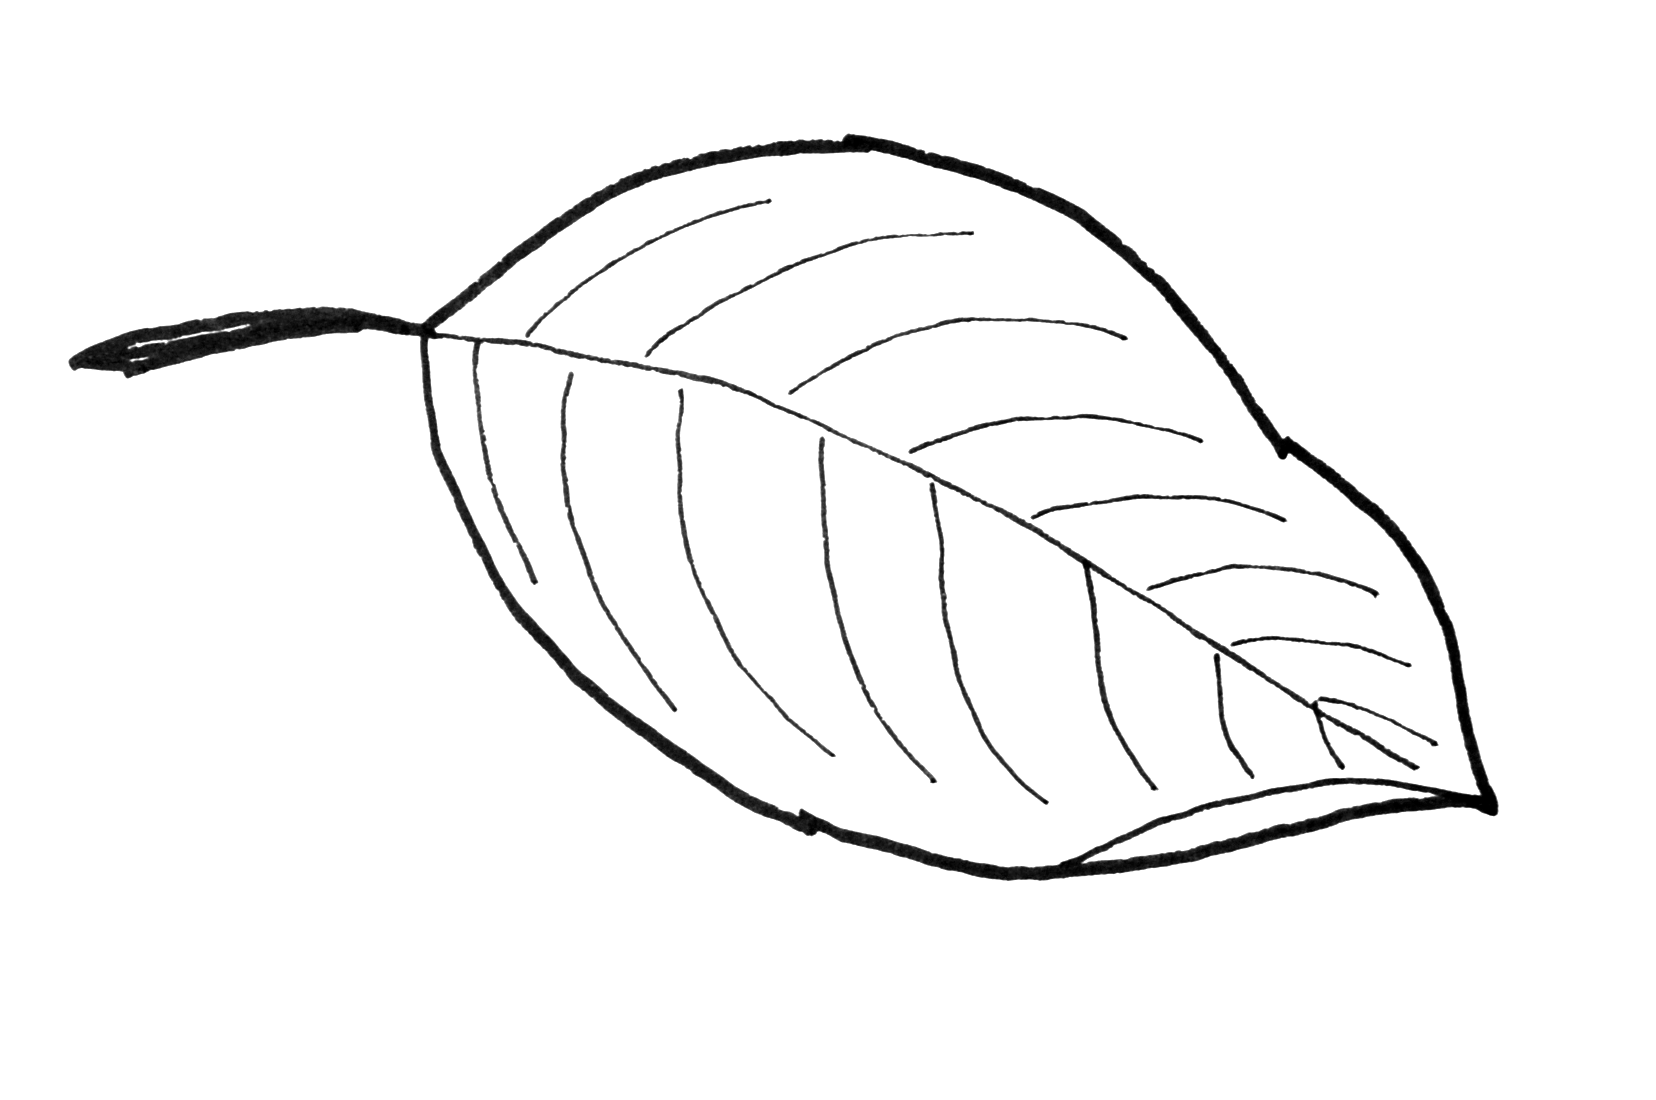 Leaf Patterns To Cut Out